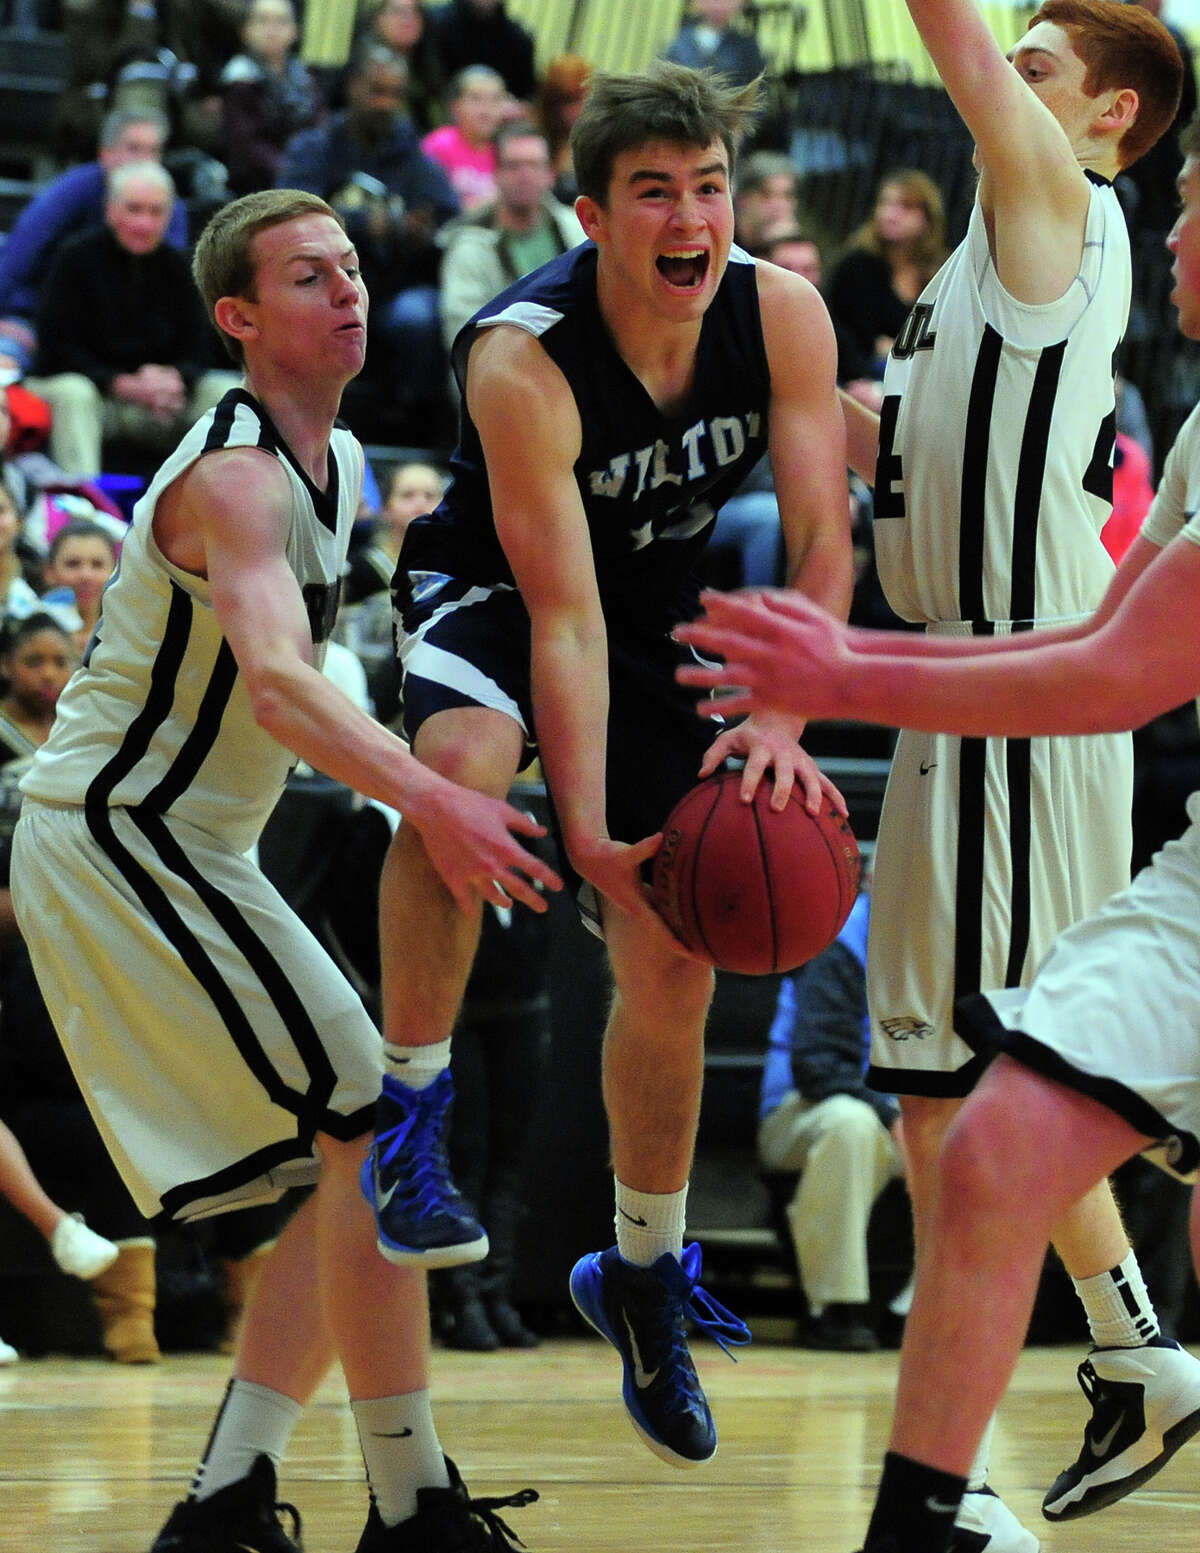 16-8, 9 points Senior guard Matt Shifrin, who surpassed 1,000 career points, will be sorely missed.